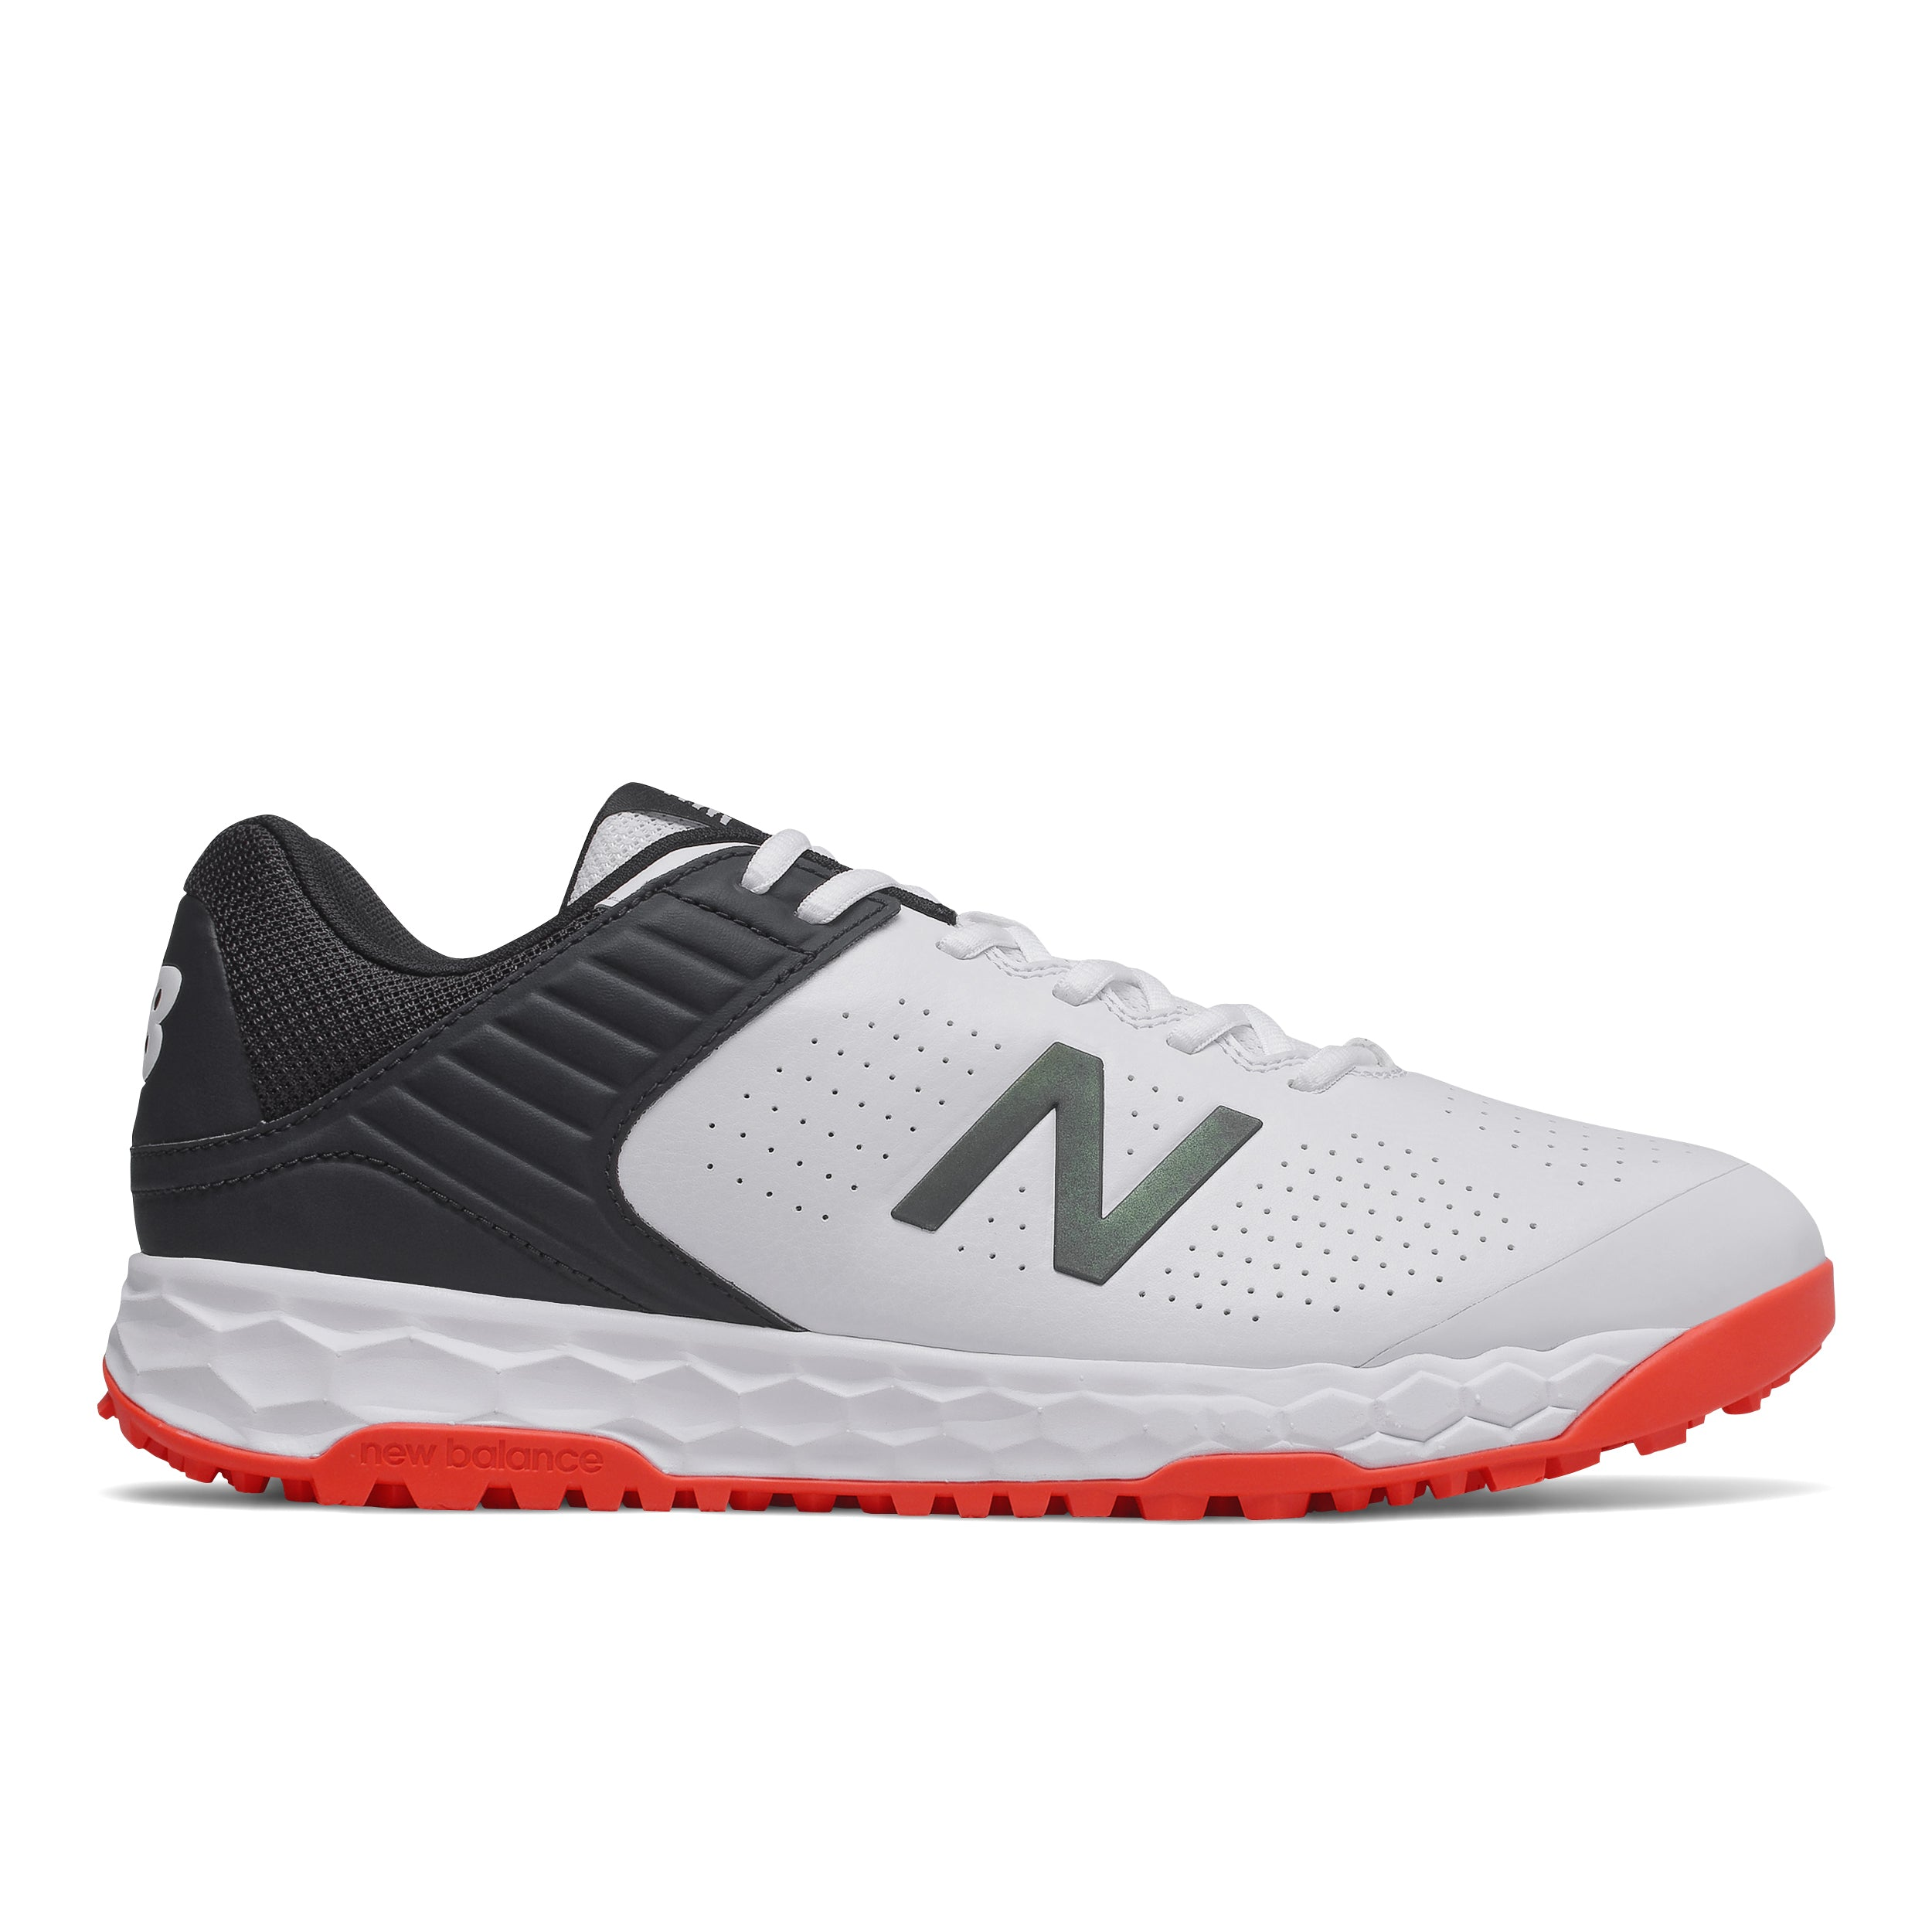 New Balance CK4020 I4 Rubber Sole Shoes